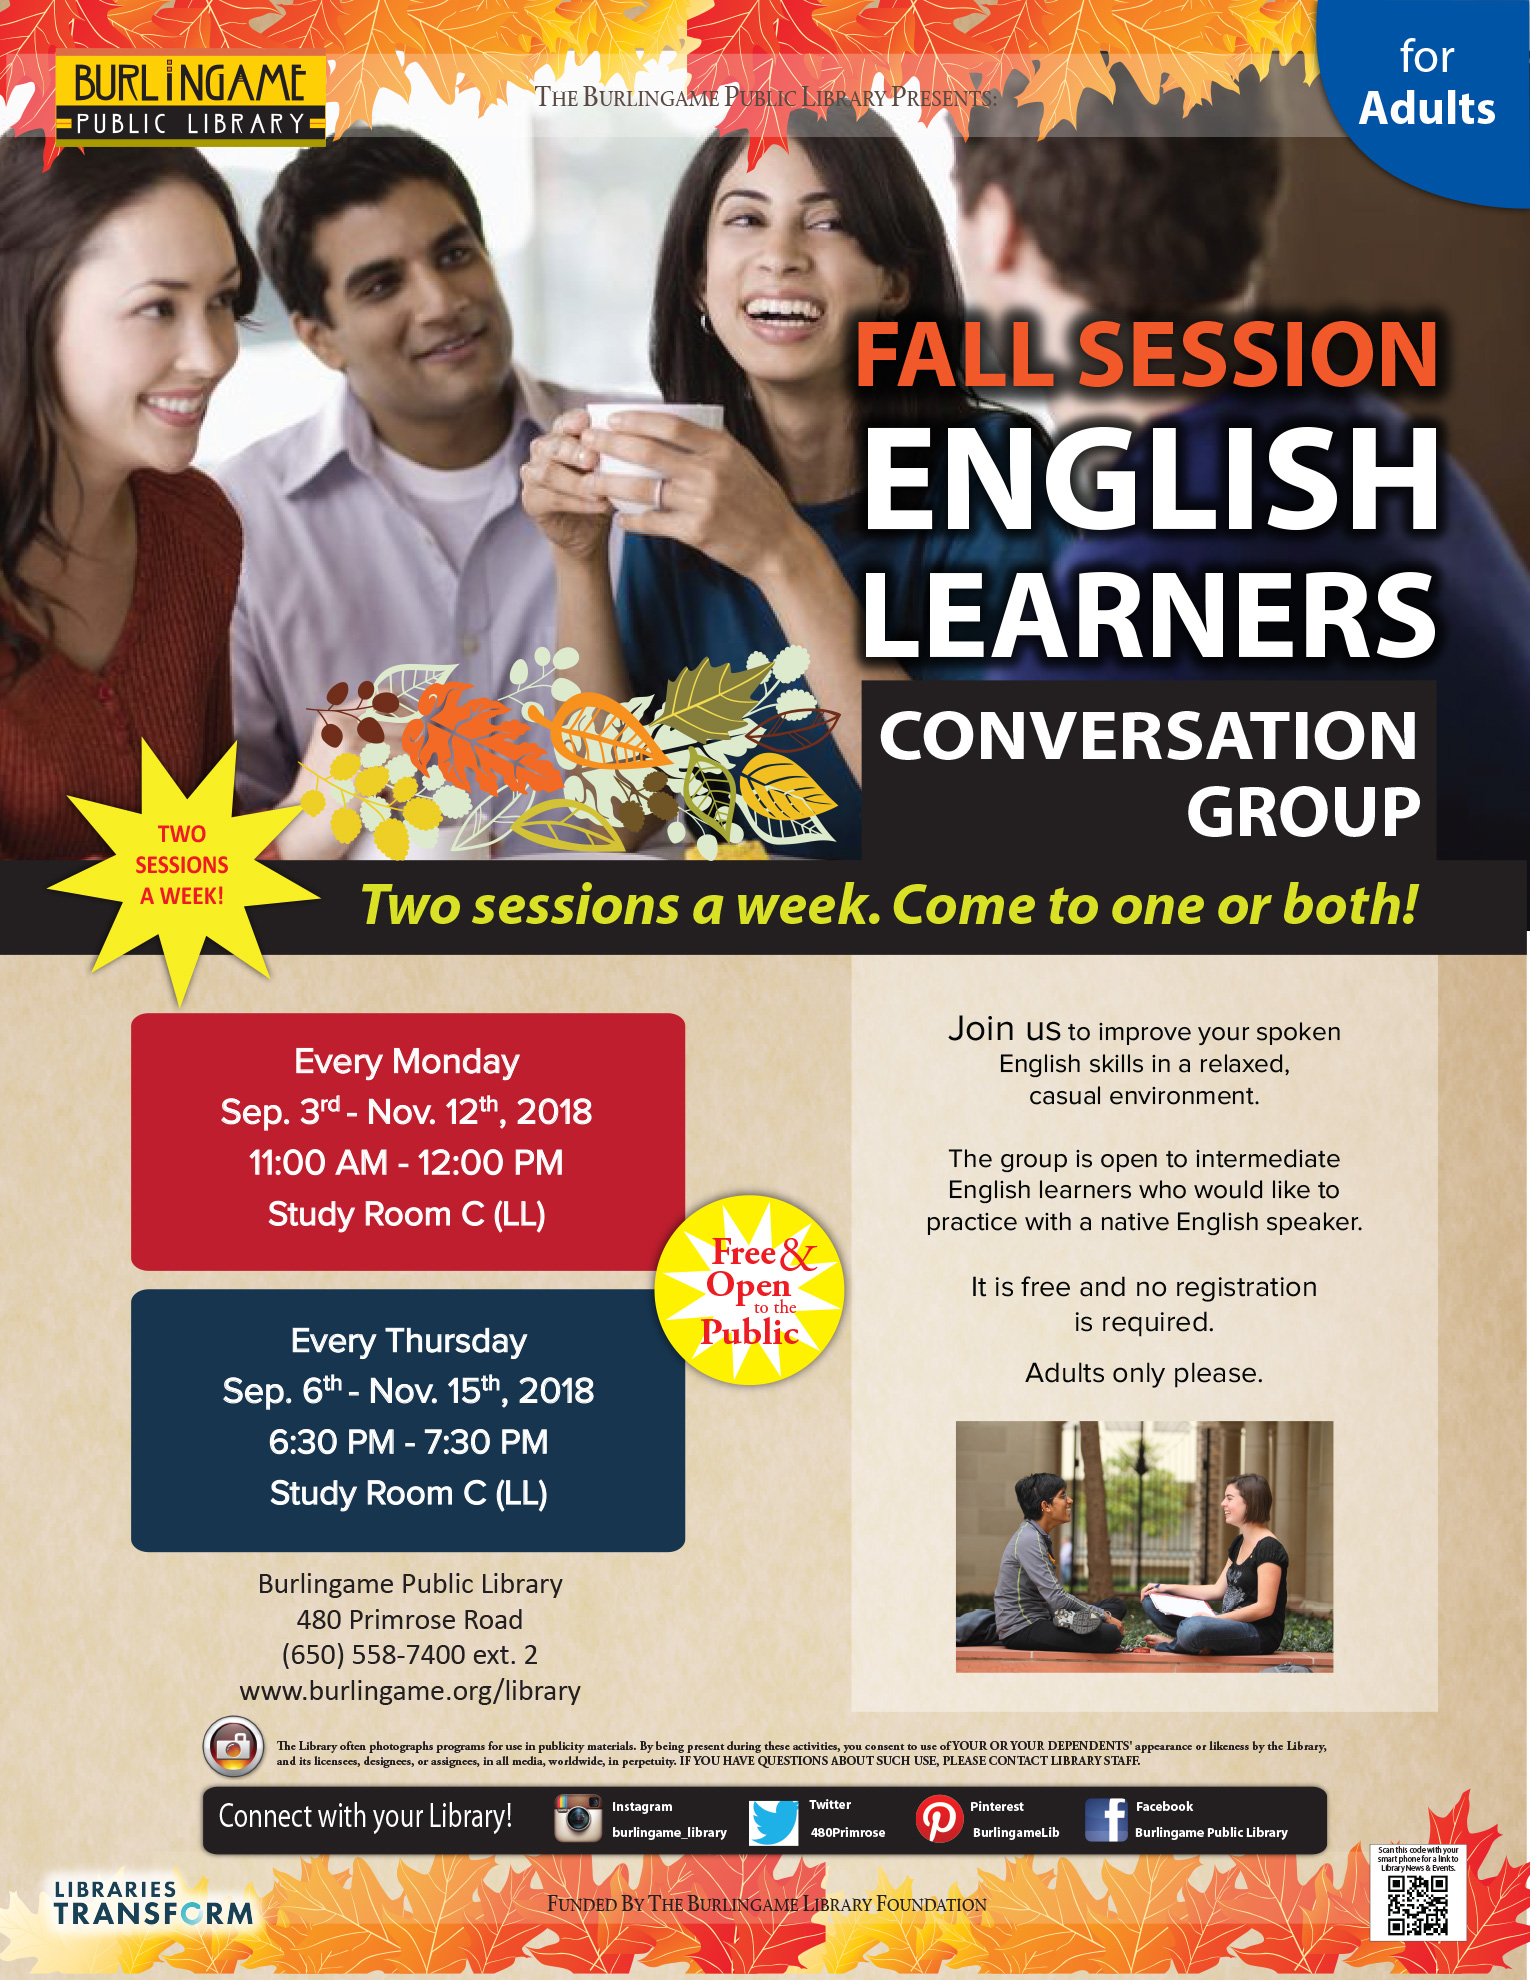 English Learners Conversation Group